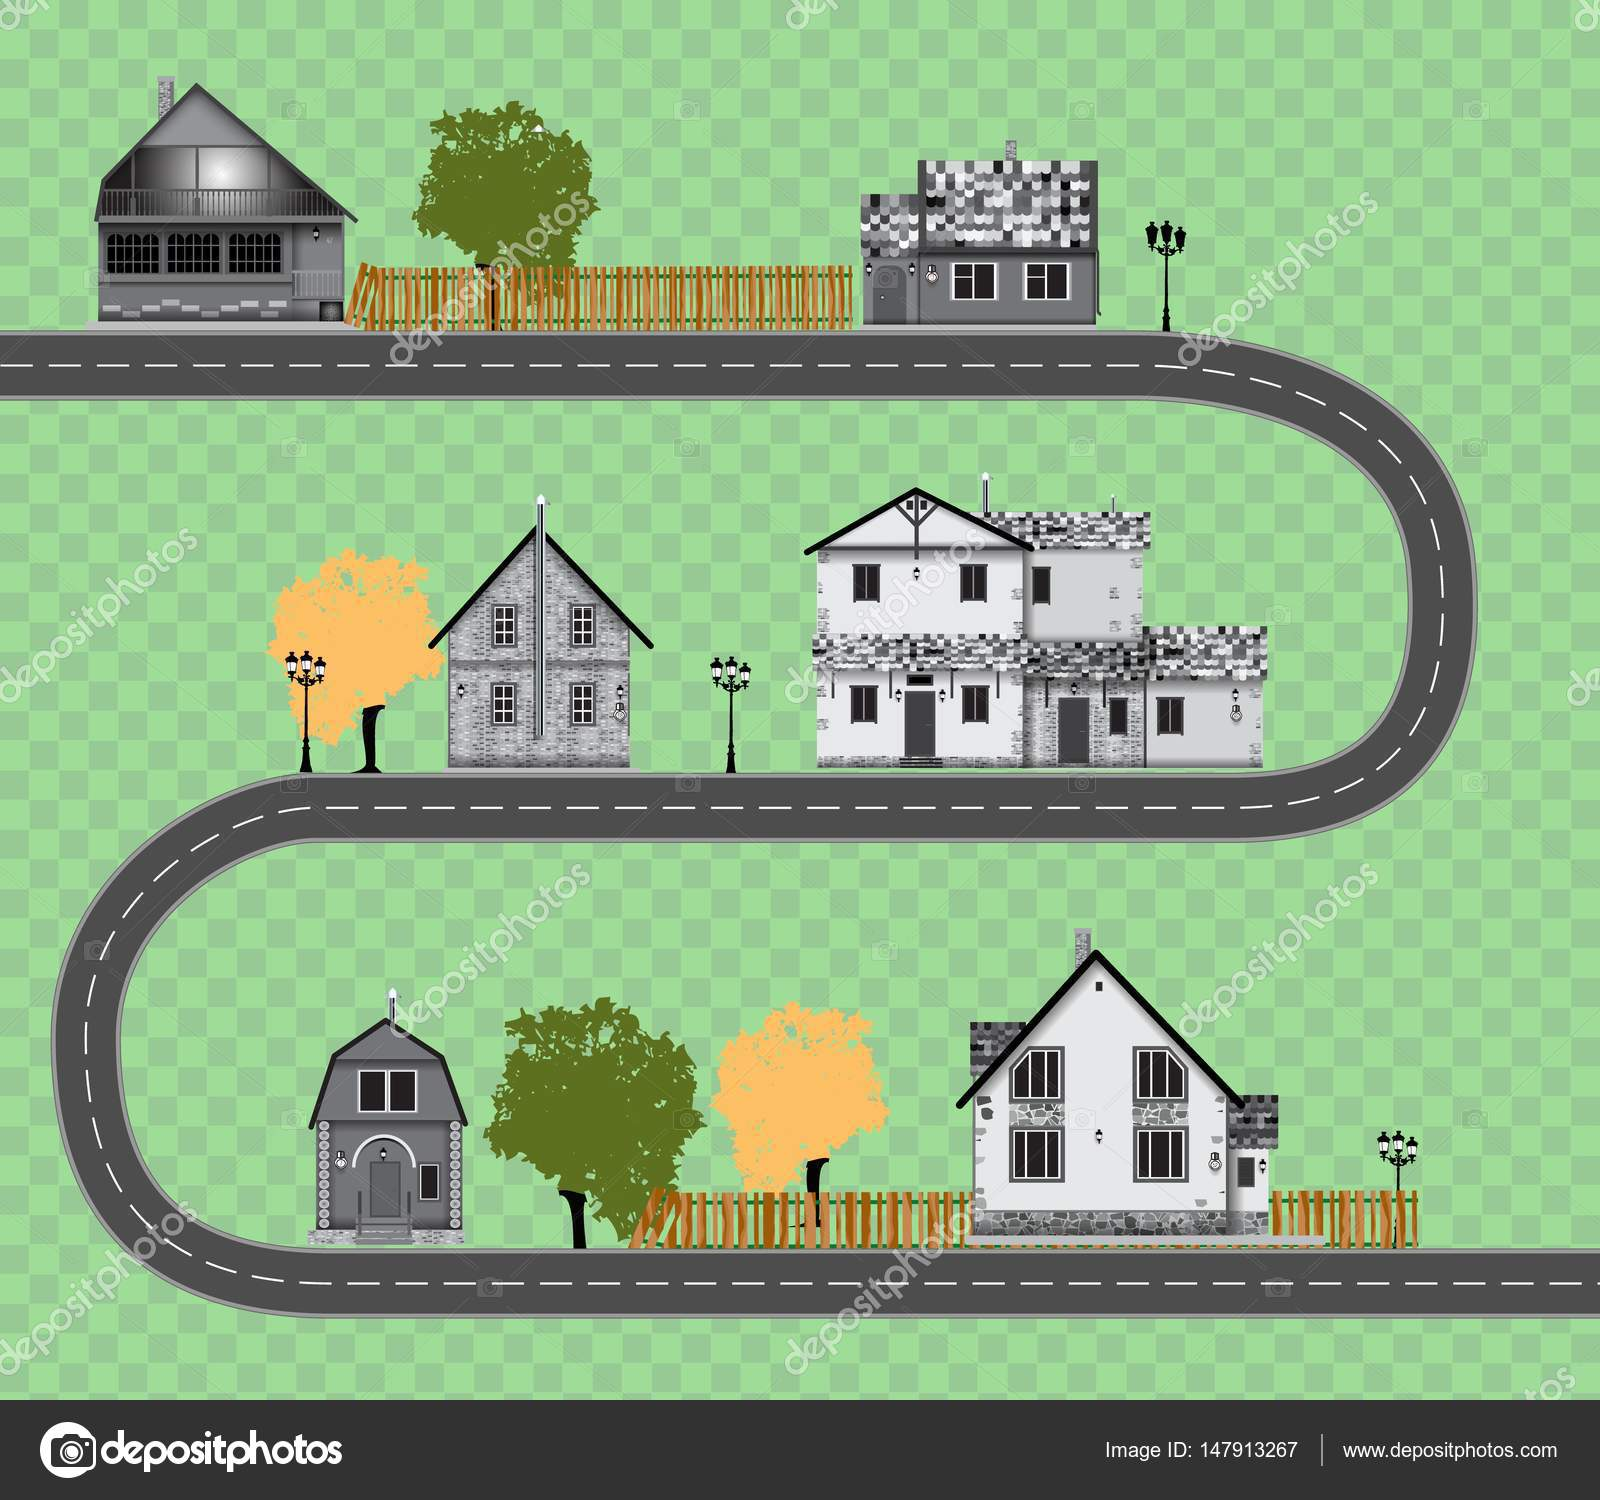 assorted cute houses collection on transparent background road